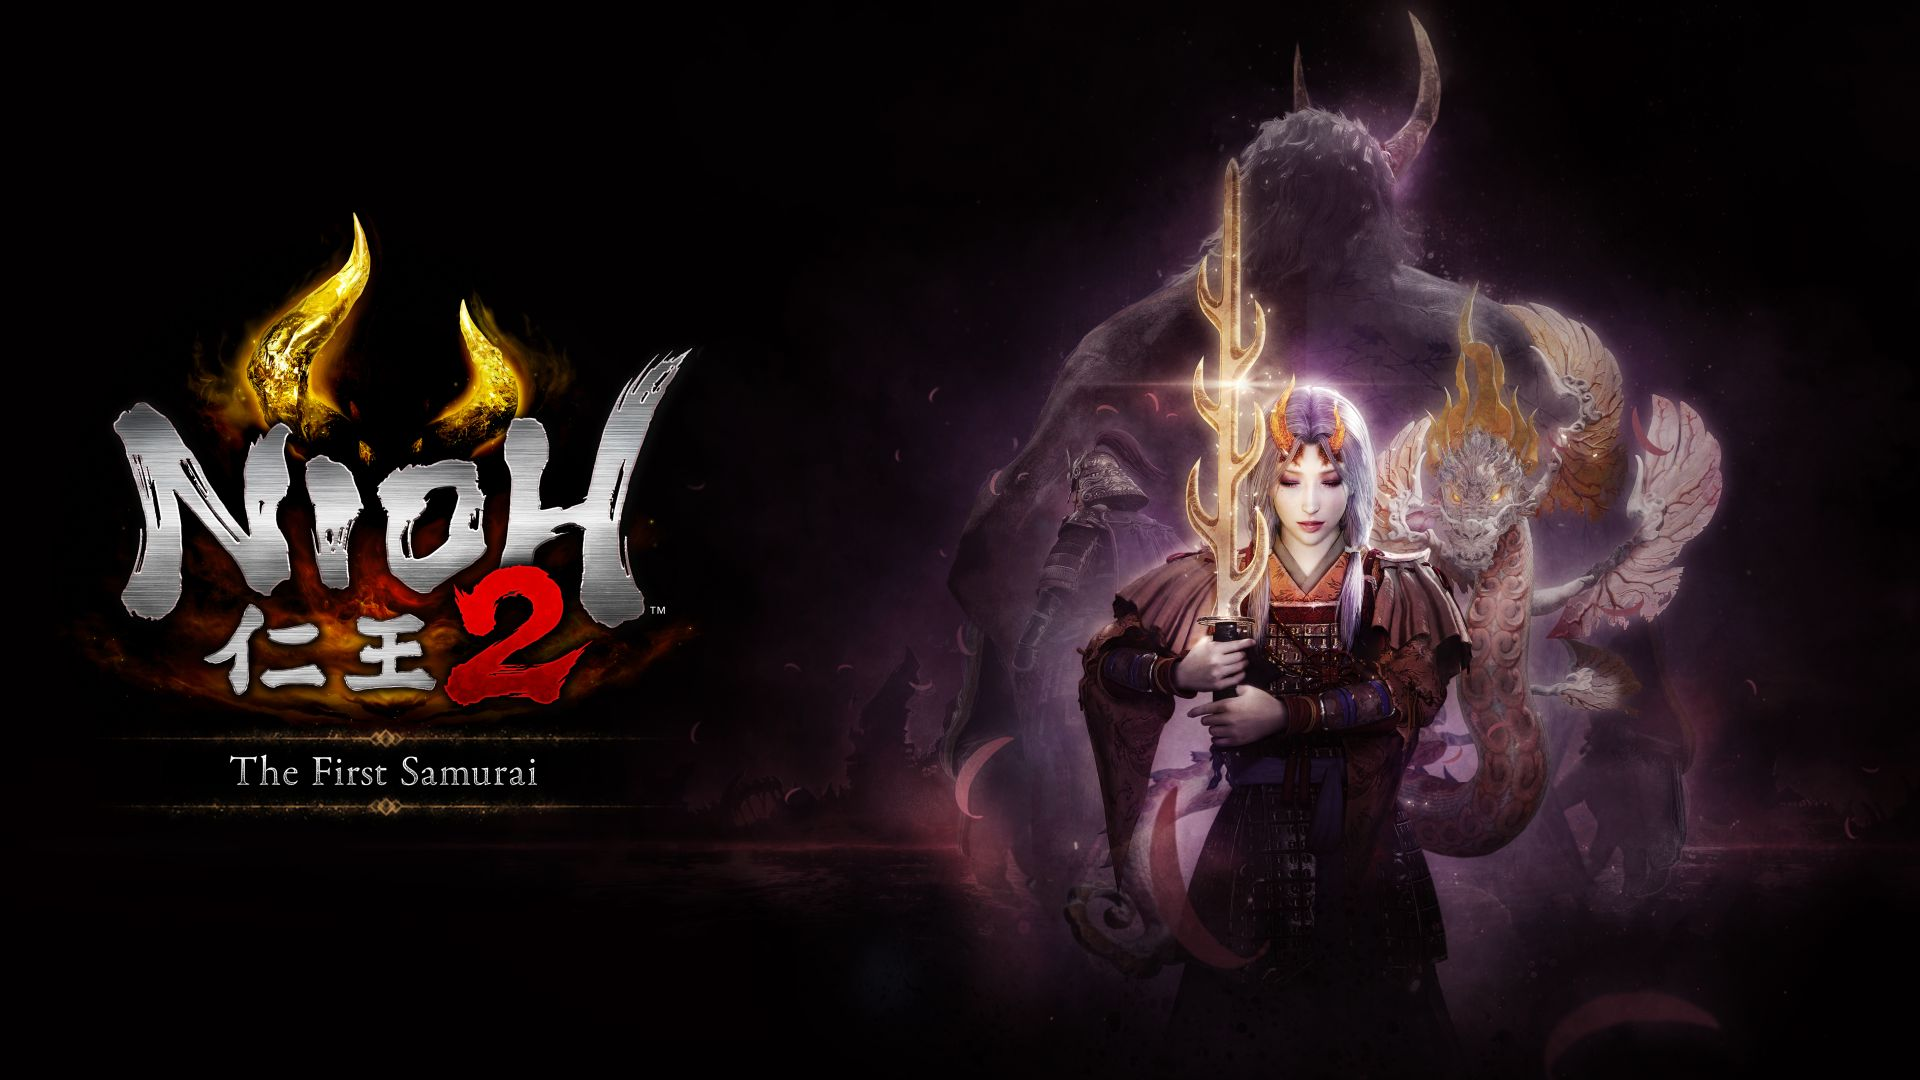 Nioh 2 - The First Samurai